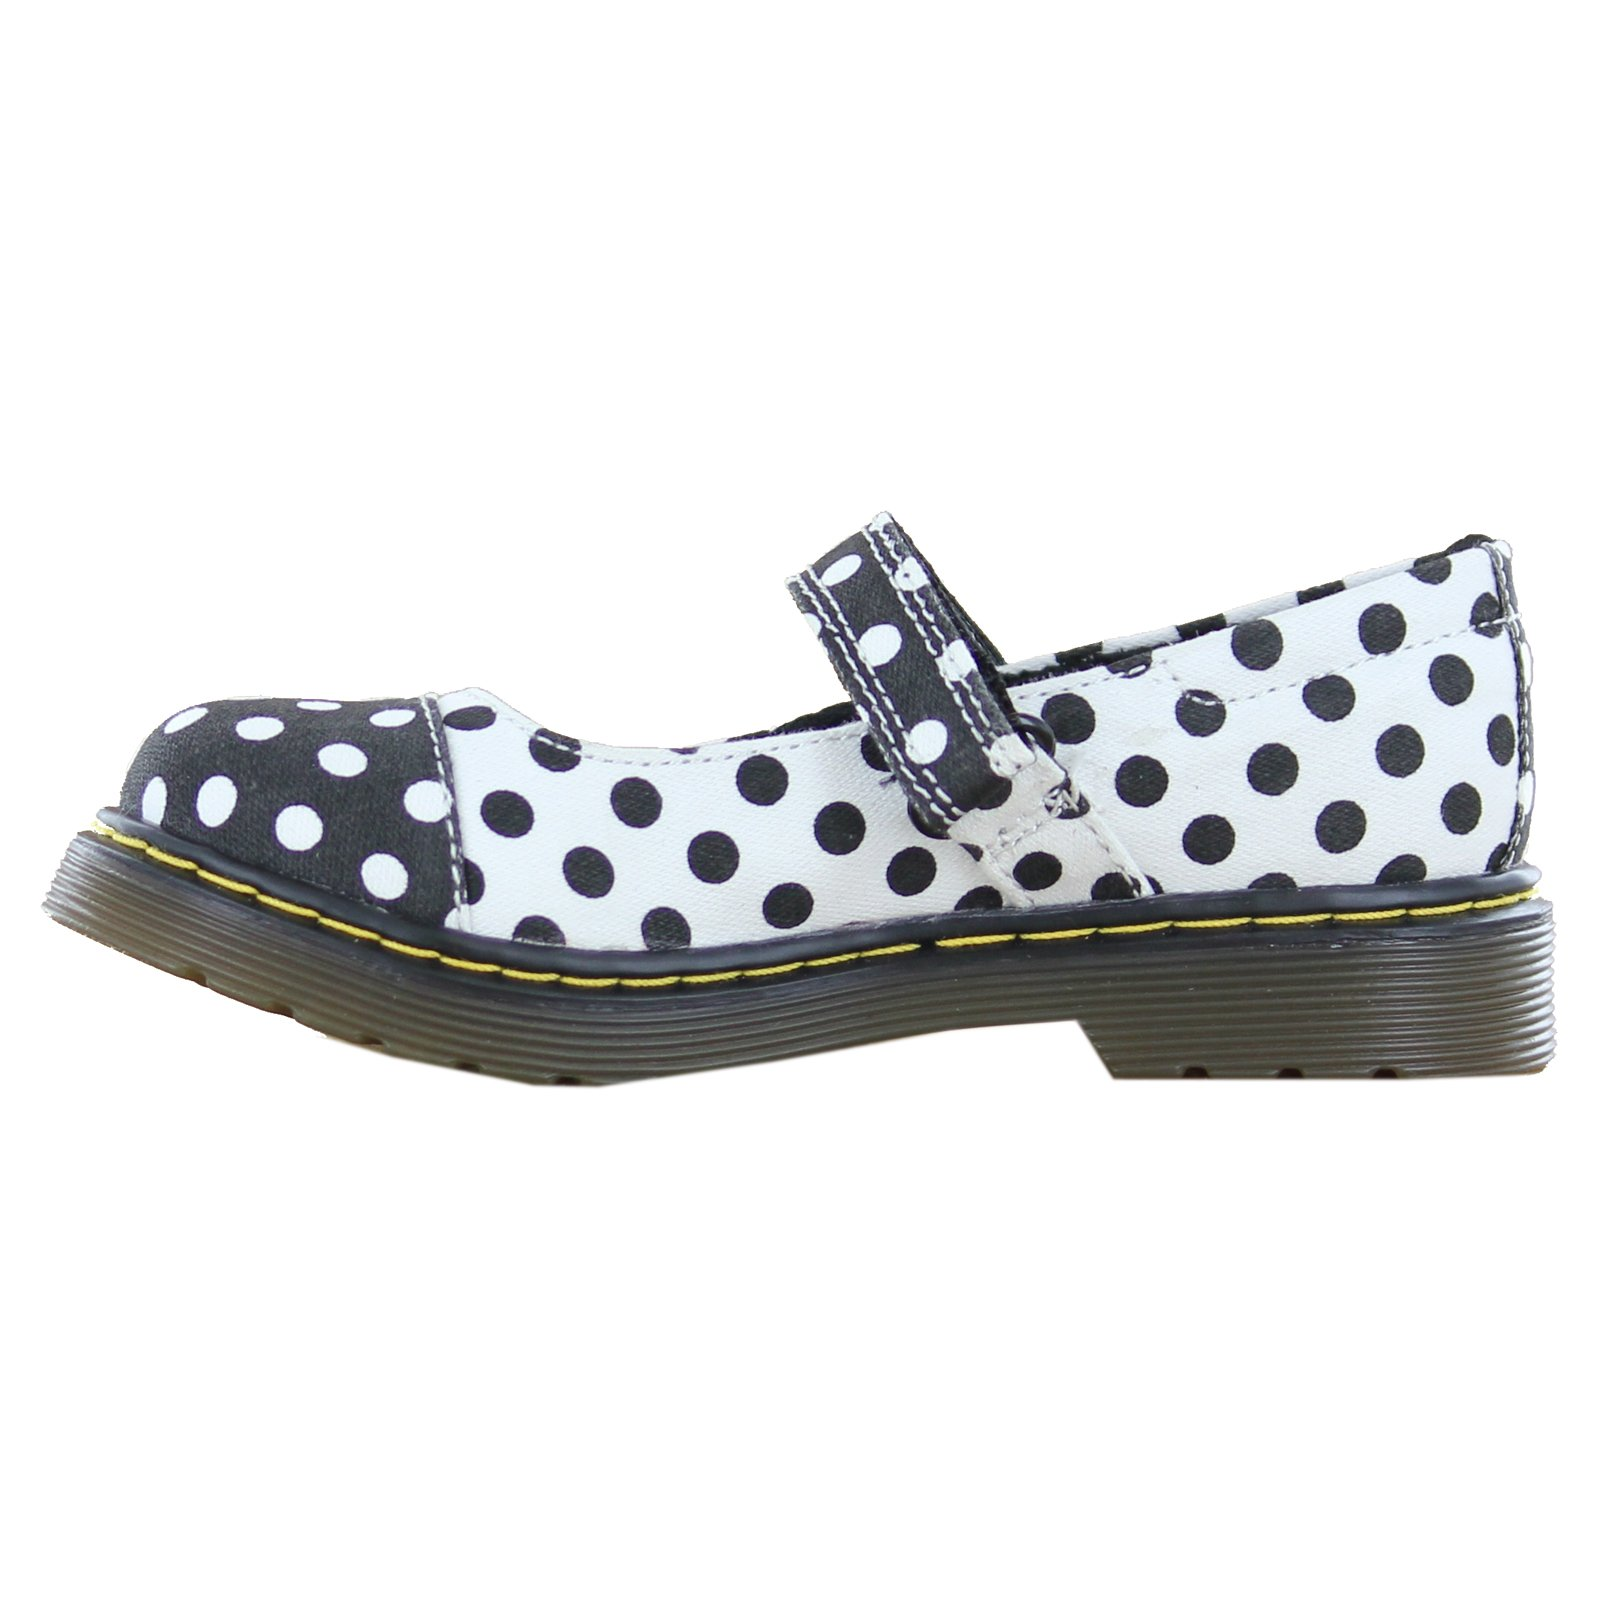 Dr. Martens Kid's Collection Girl's Bijou Toe Cap Mary Jane (Little Kid) Black+White/White+Black Dots Fine Canvas Flat 13 UK (1 US Little Kid) M by Dr. Martens (Image #3)